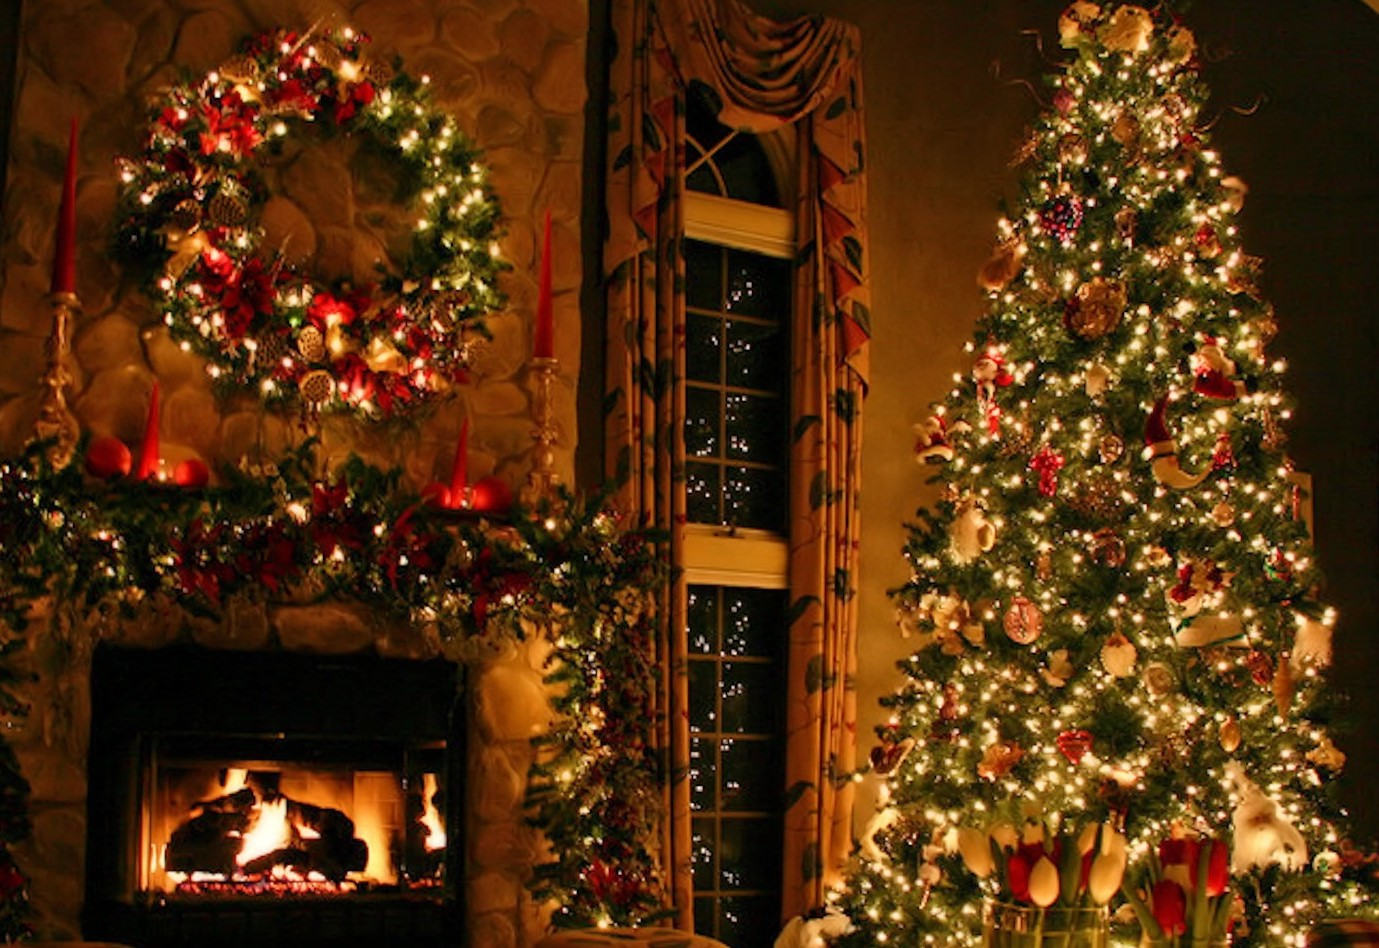 Christmas In England Traditions.British Christmas Traditions Talk 29th Nov Perfect Cuppa